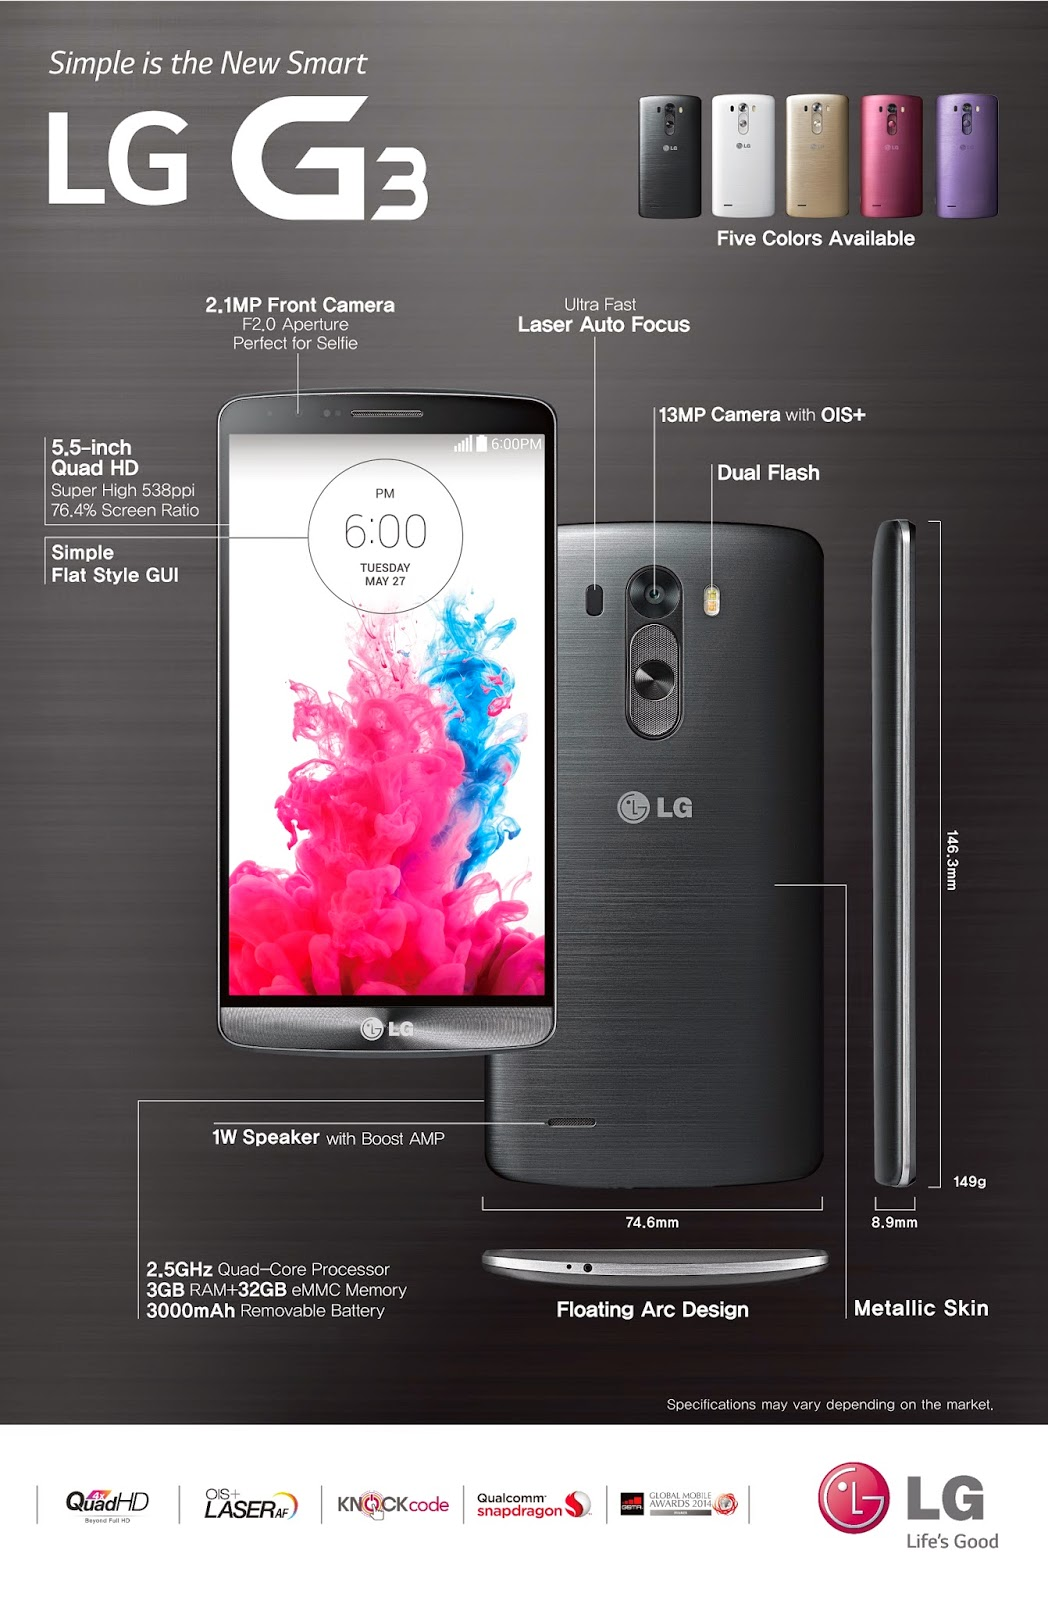 LG G3 Brochure of Feature and Specifications Overview